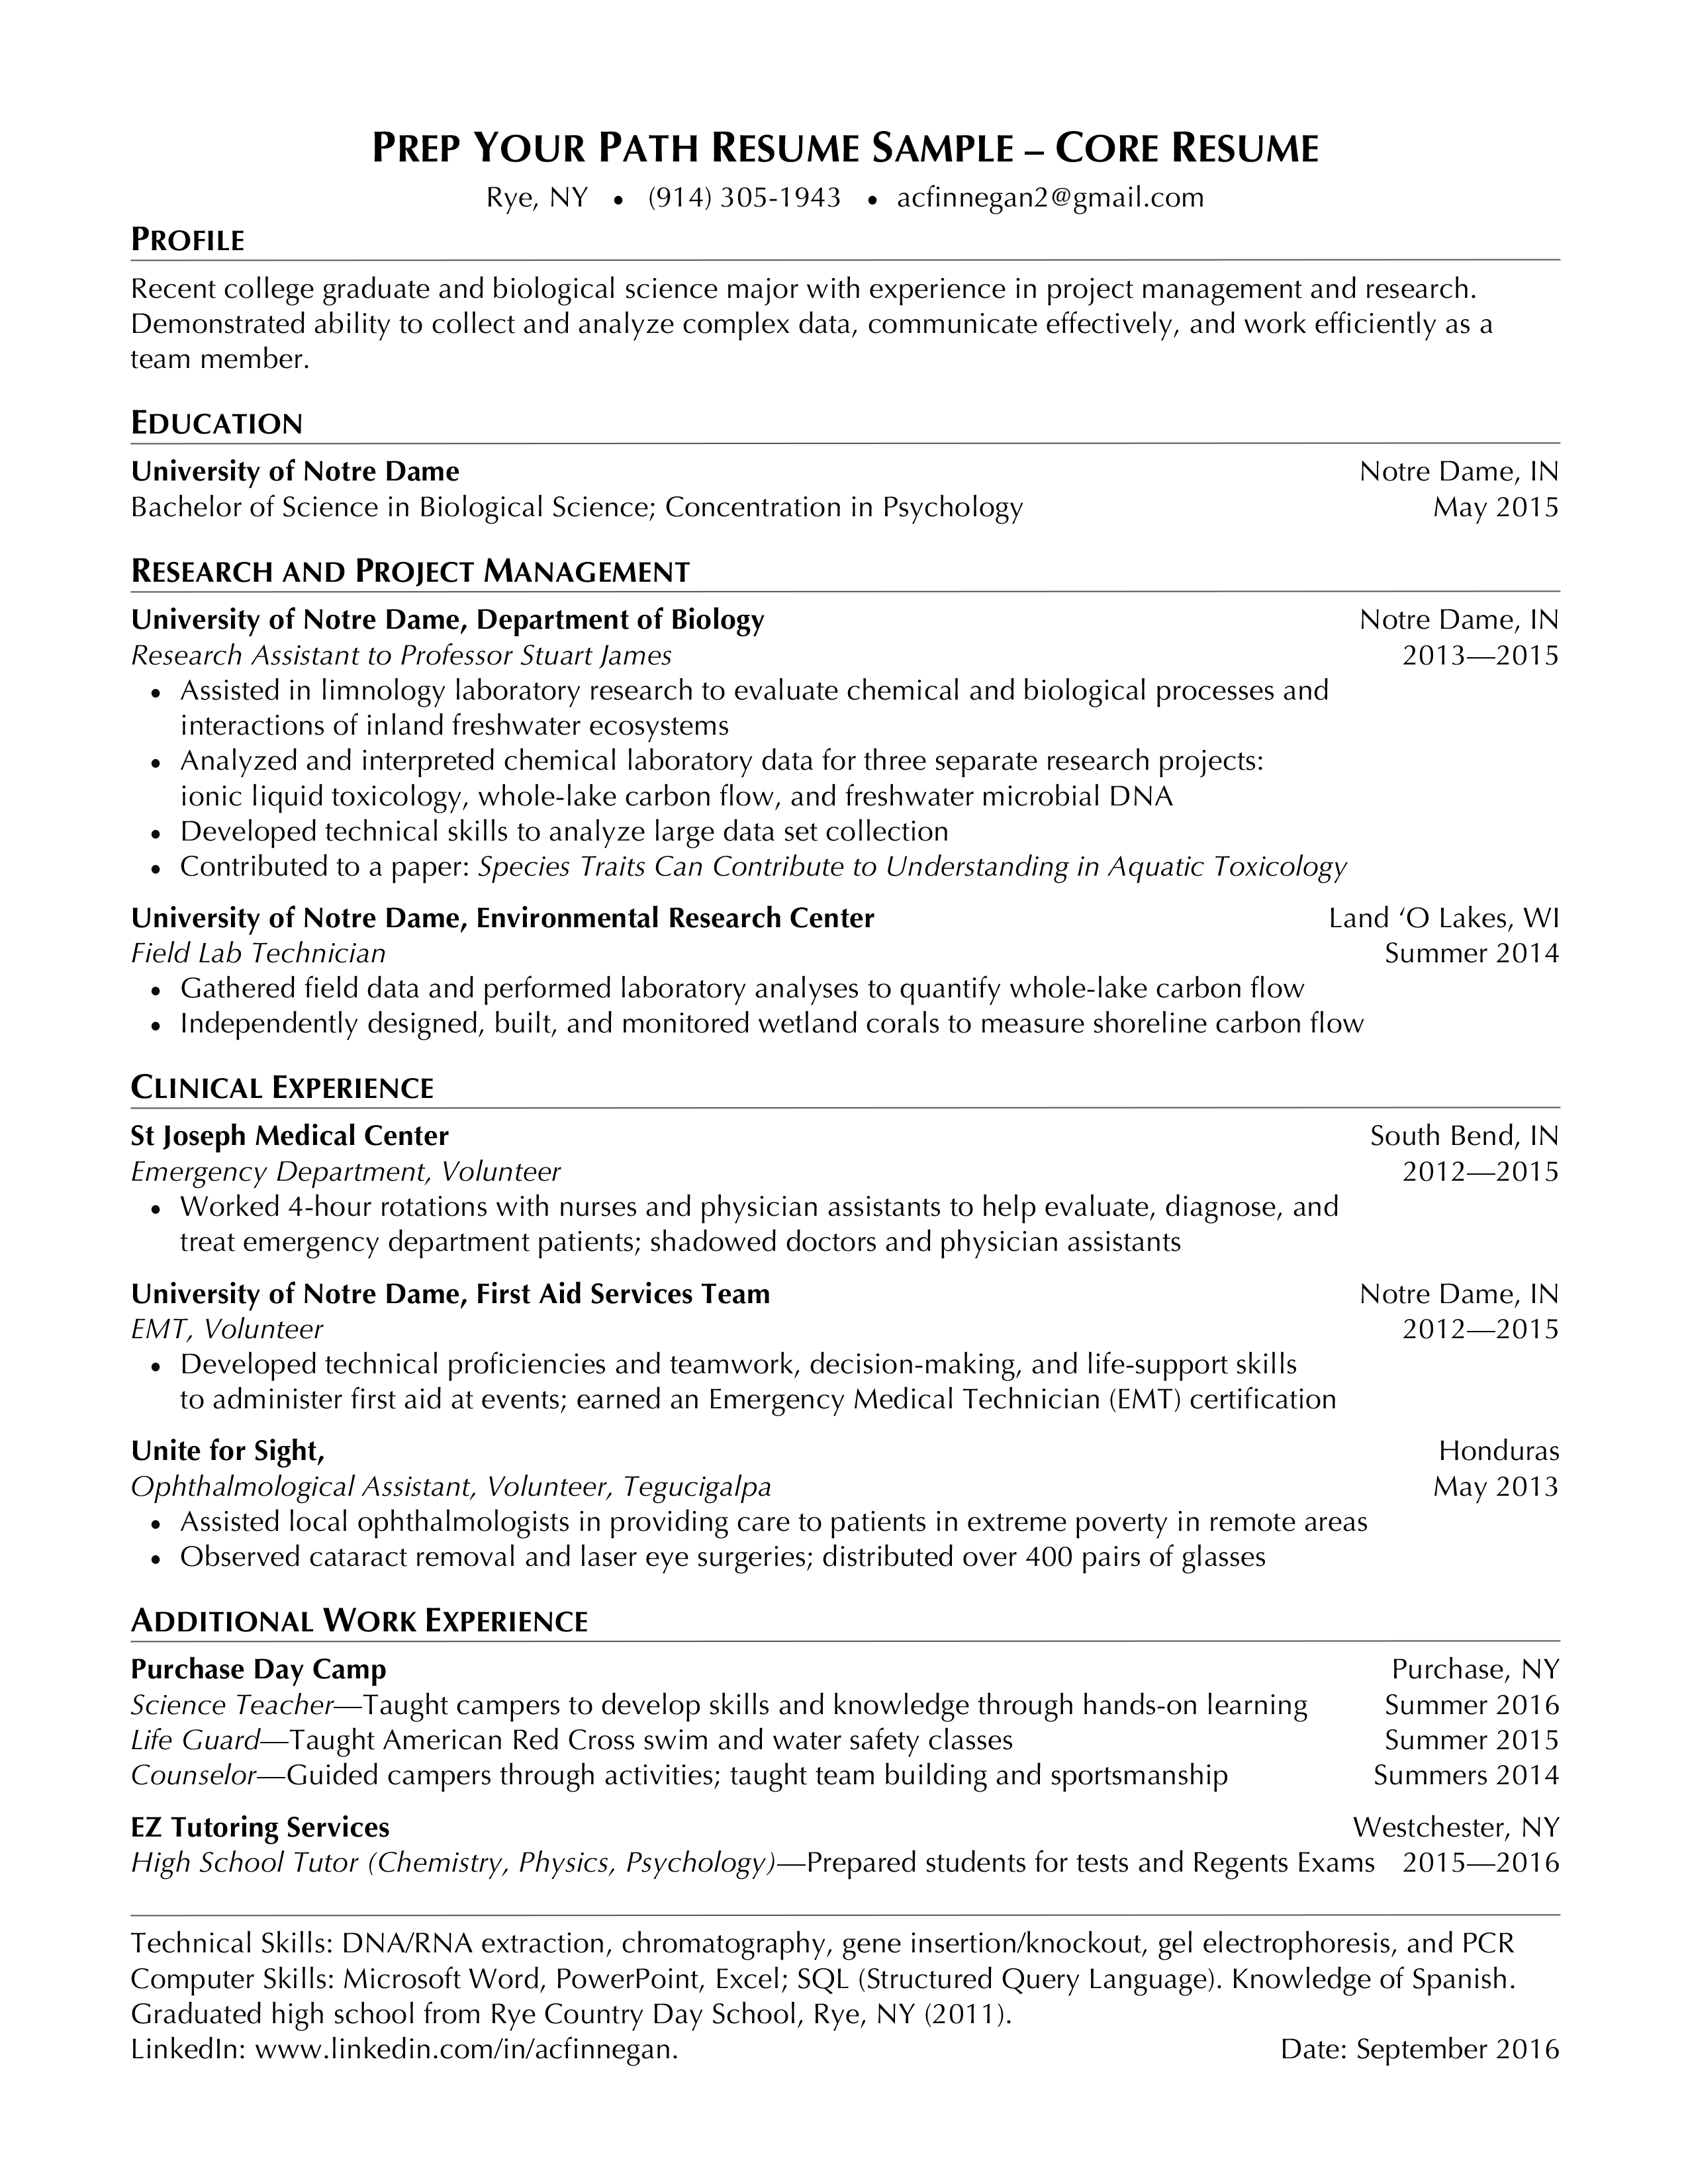 Prep Your Path Resume Sample Core Resume